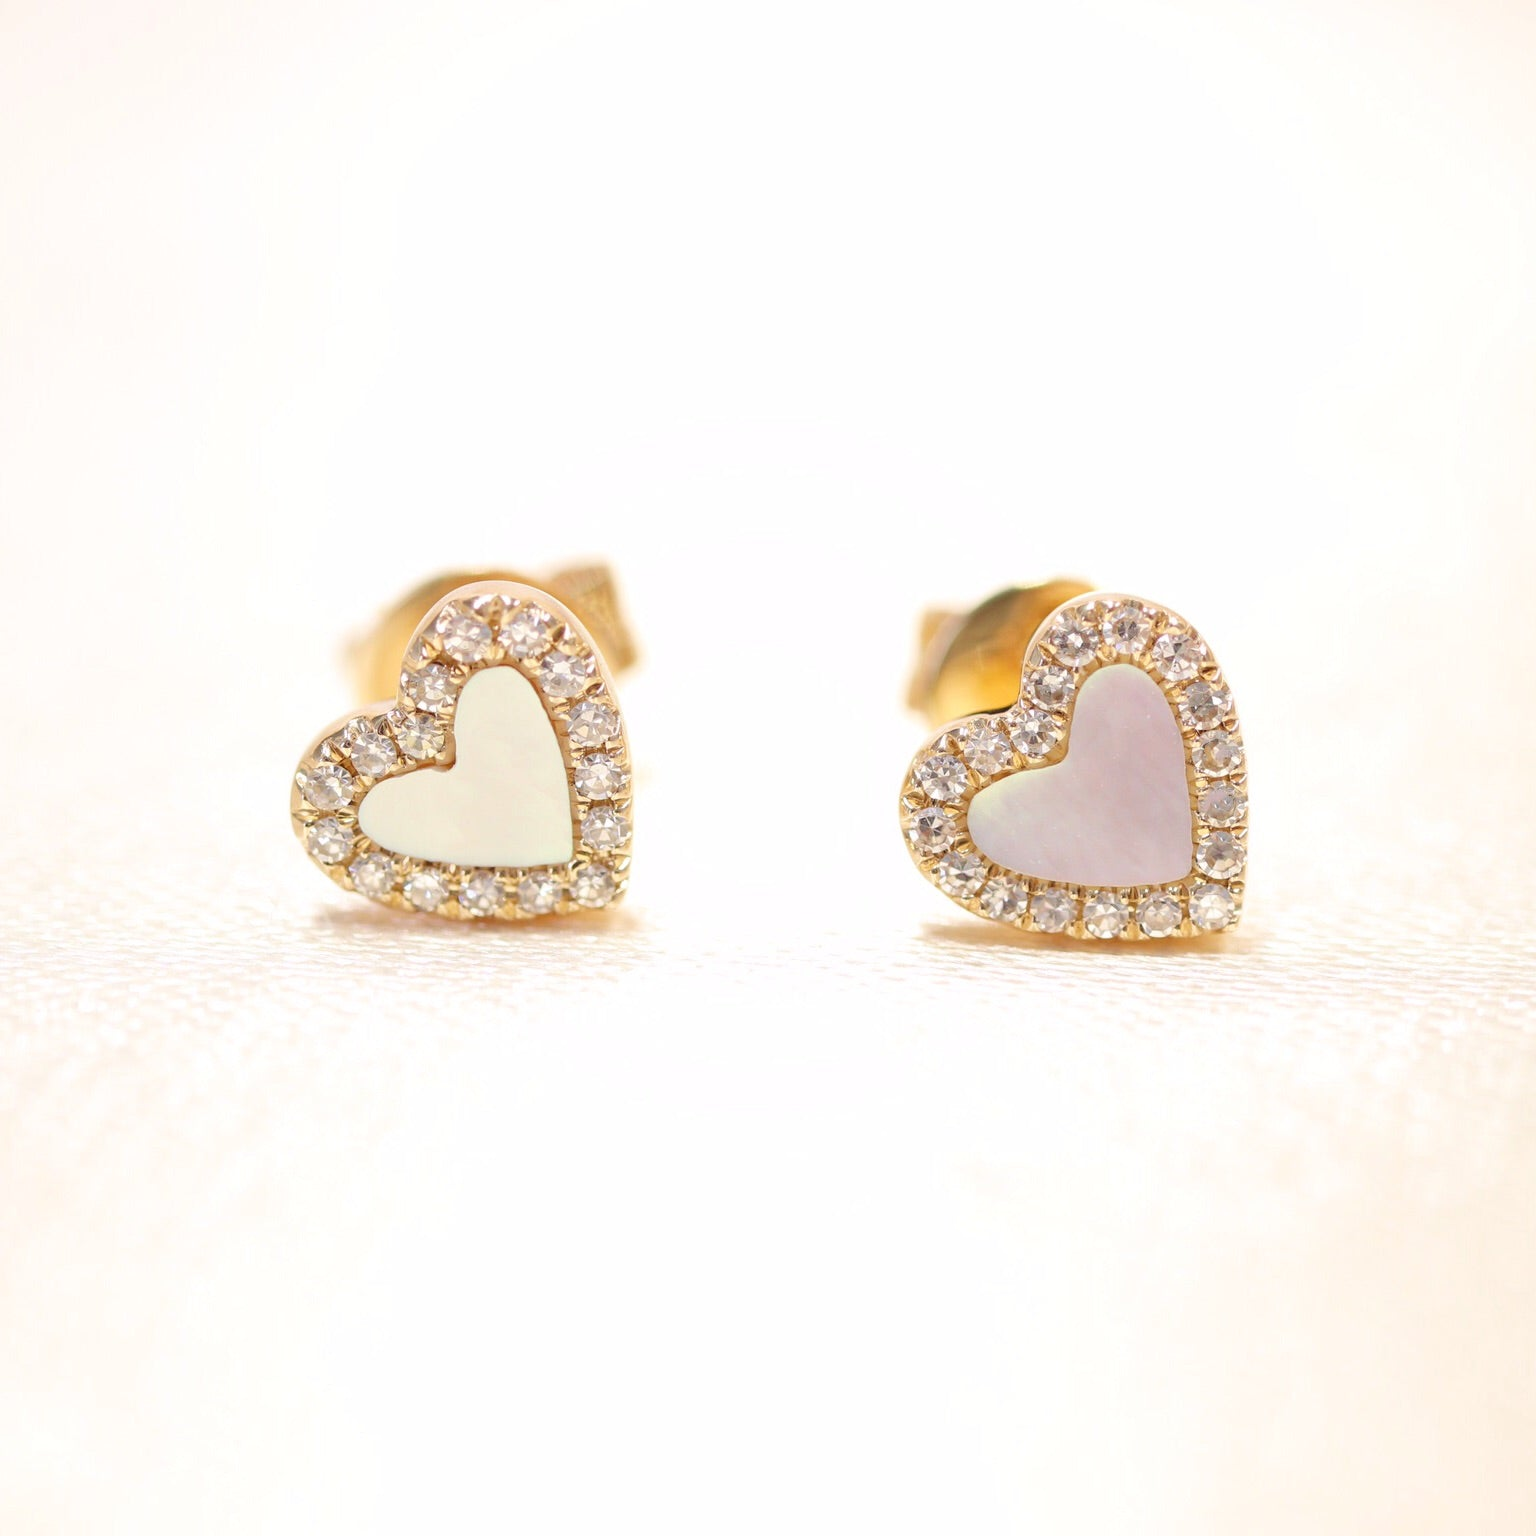 14K Gold Heart Shape Mother of Pearl & Diamond Studs - Ice Motif